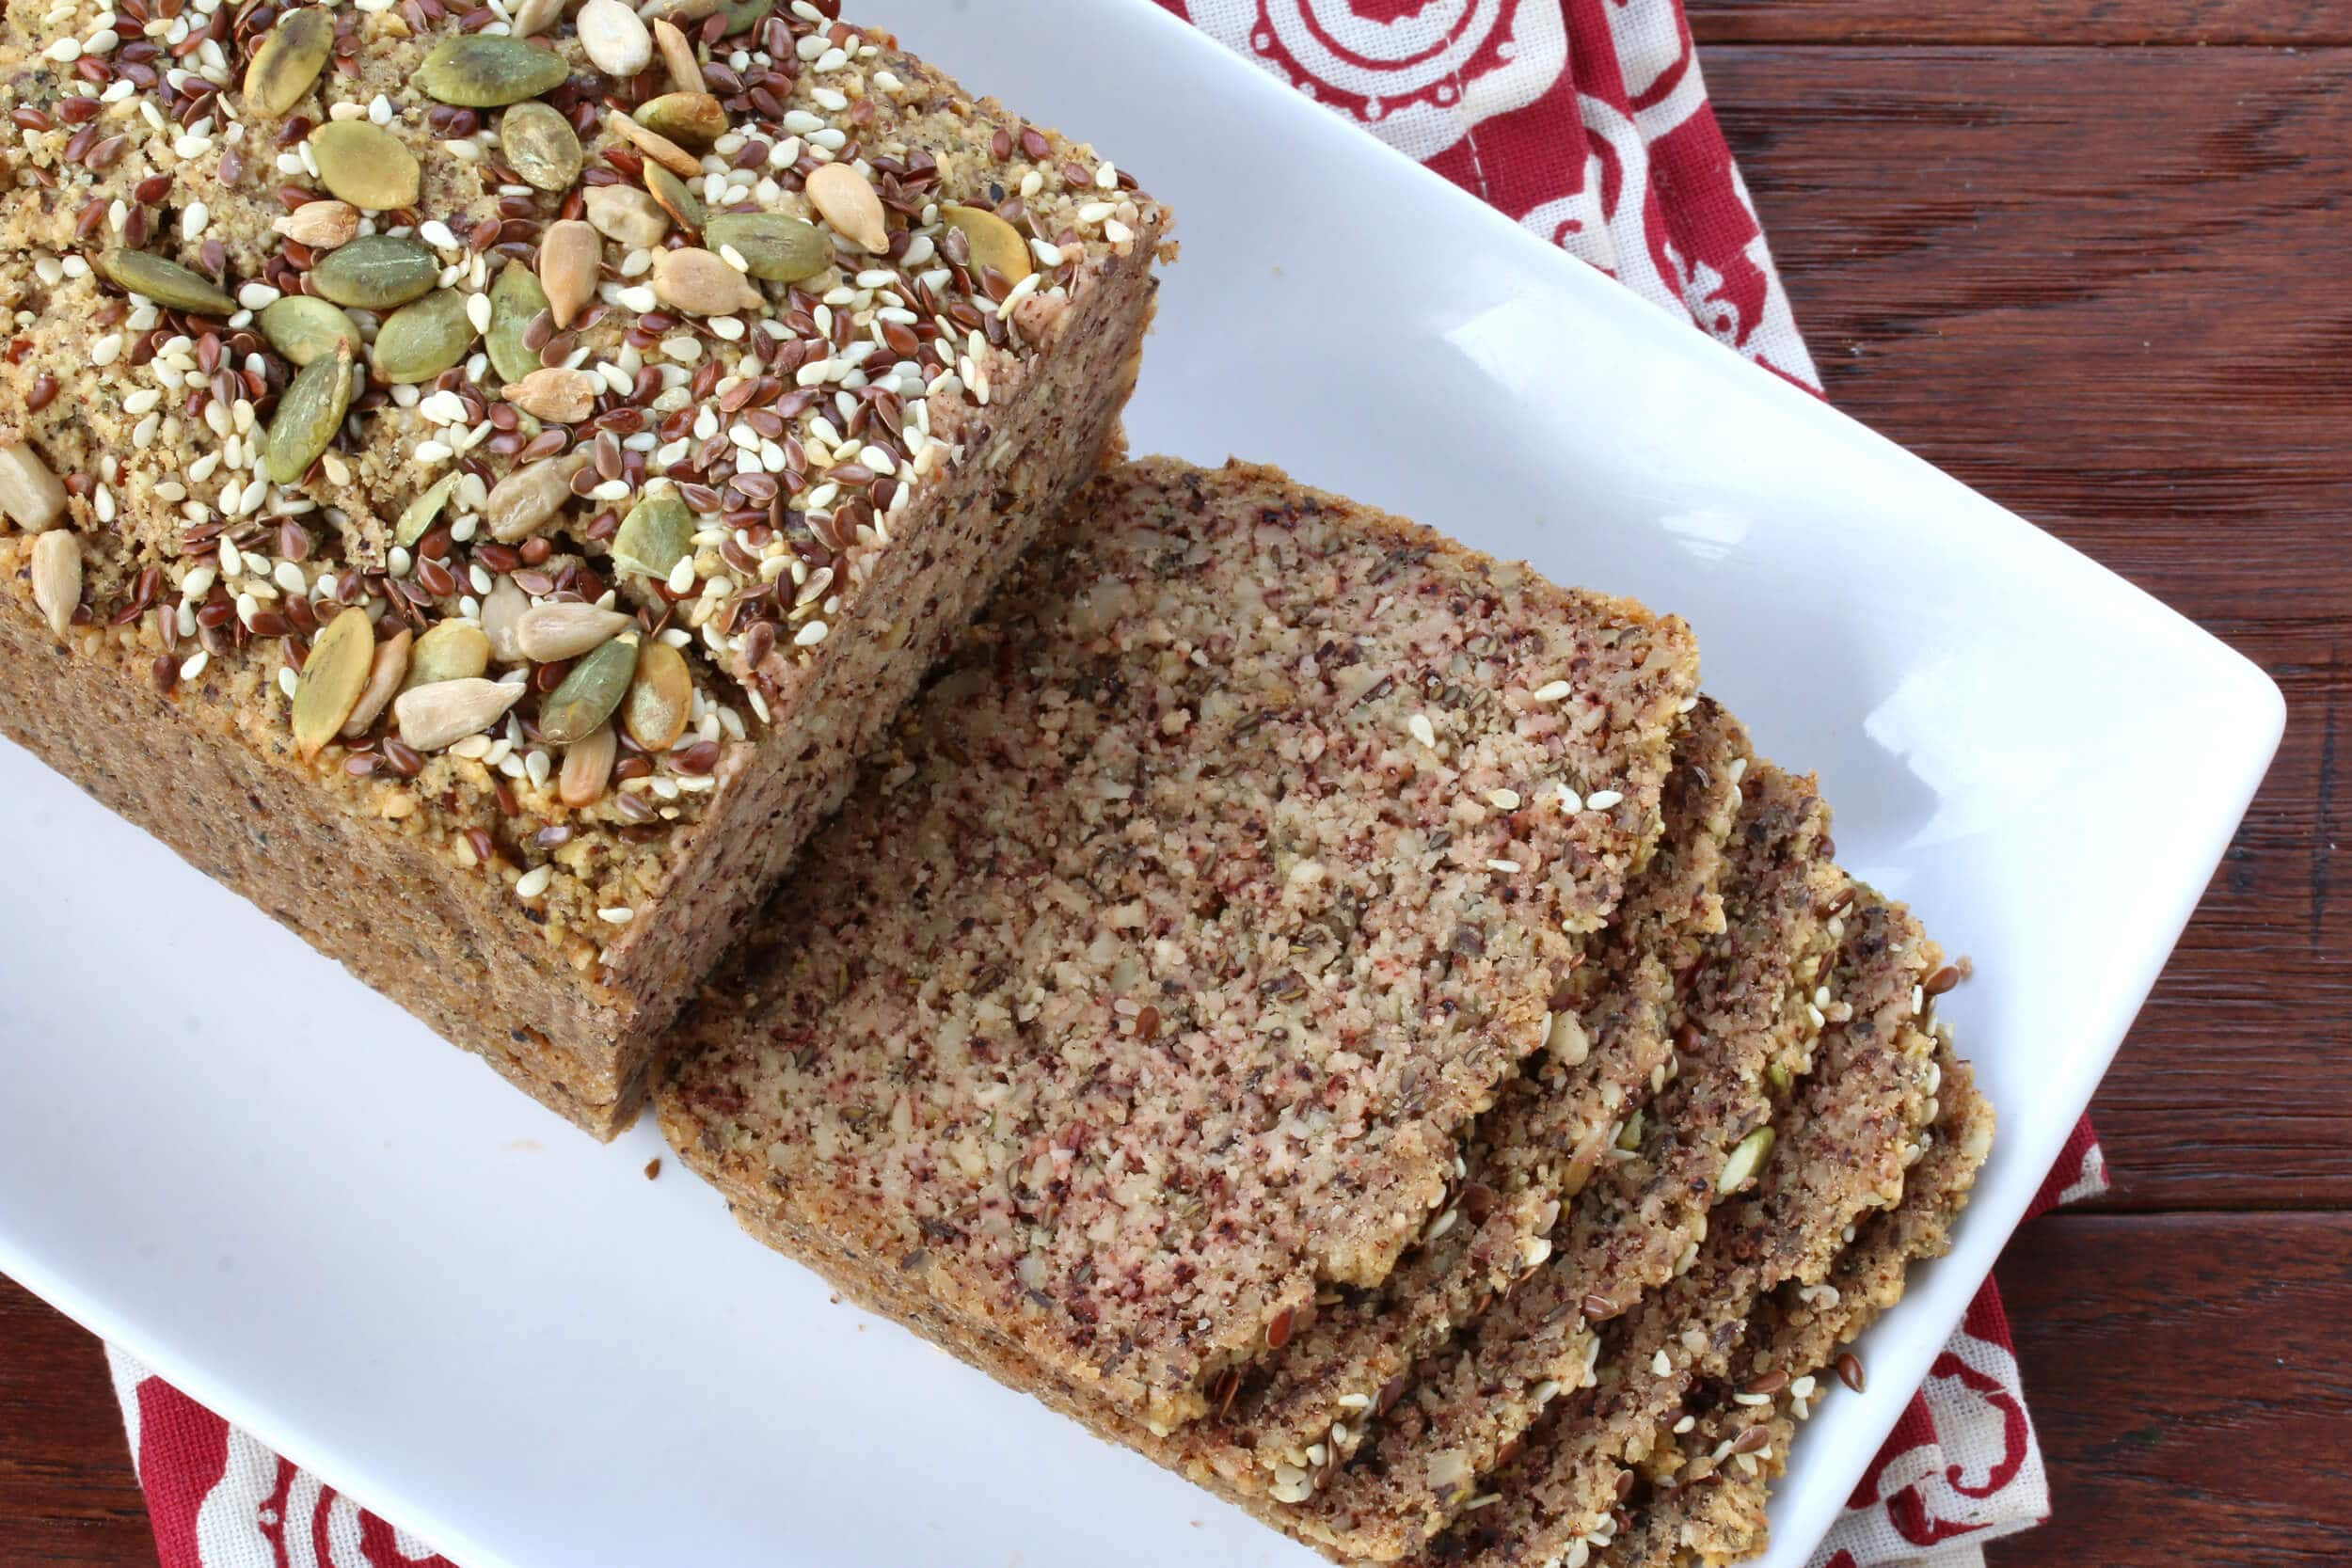 Paleo Low Carb Bread  Low Carb High Protein Nut & Seed Bread Paleo The